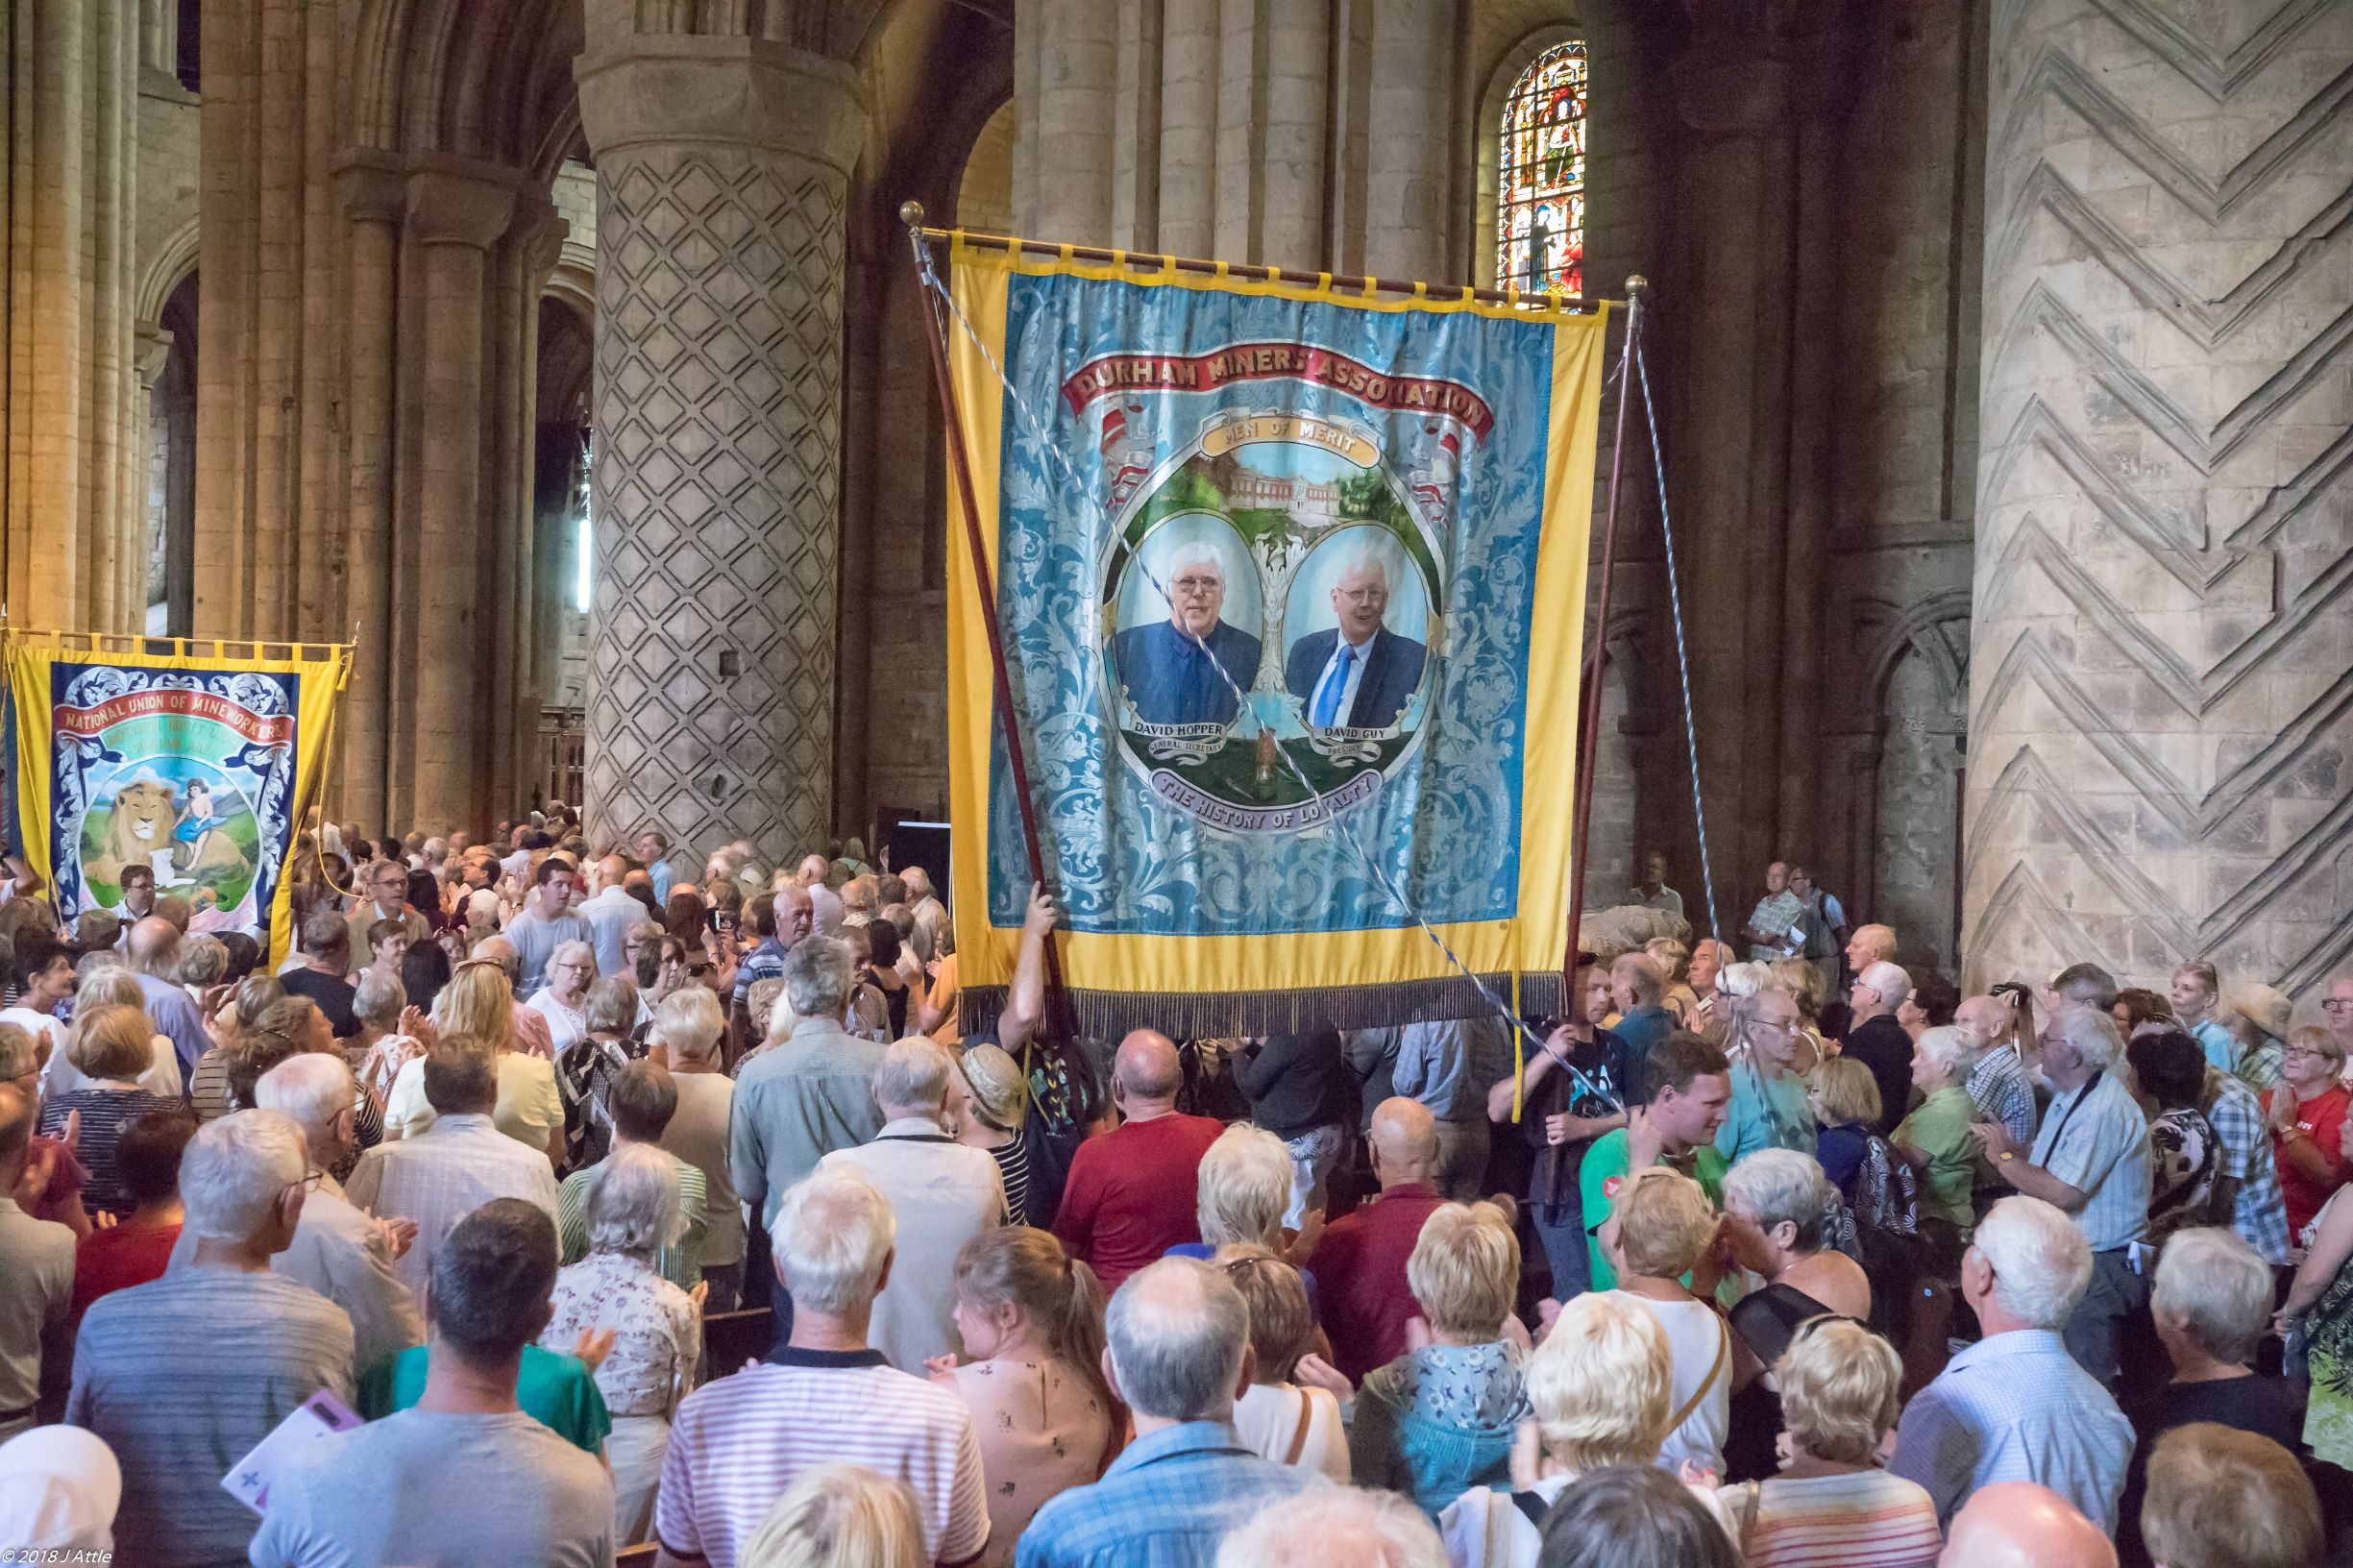 Durham_Cathedral_Miners'_Festival_Service__2018_credit_John_Attle.jpg